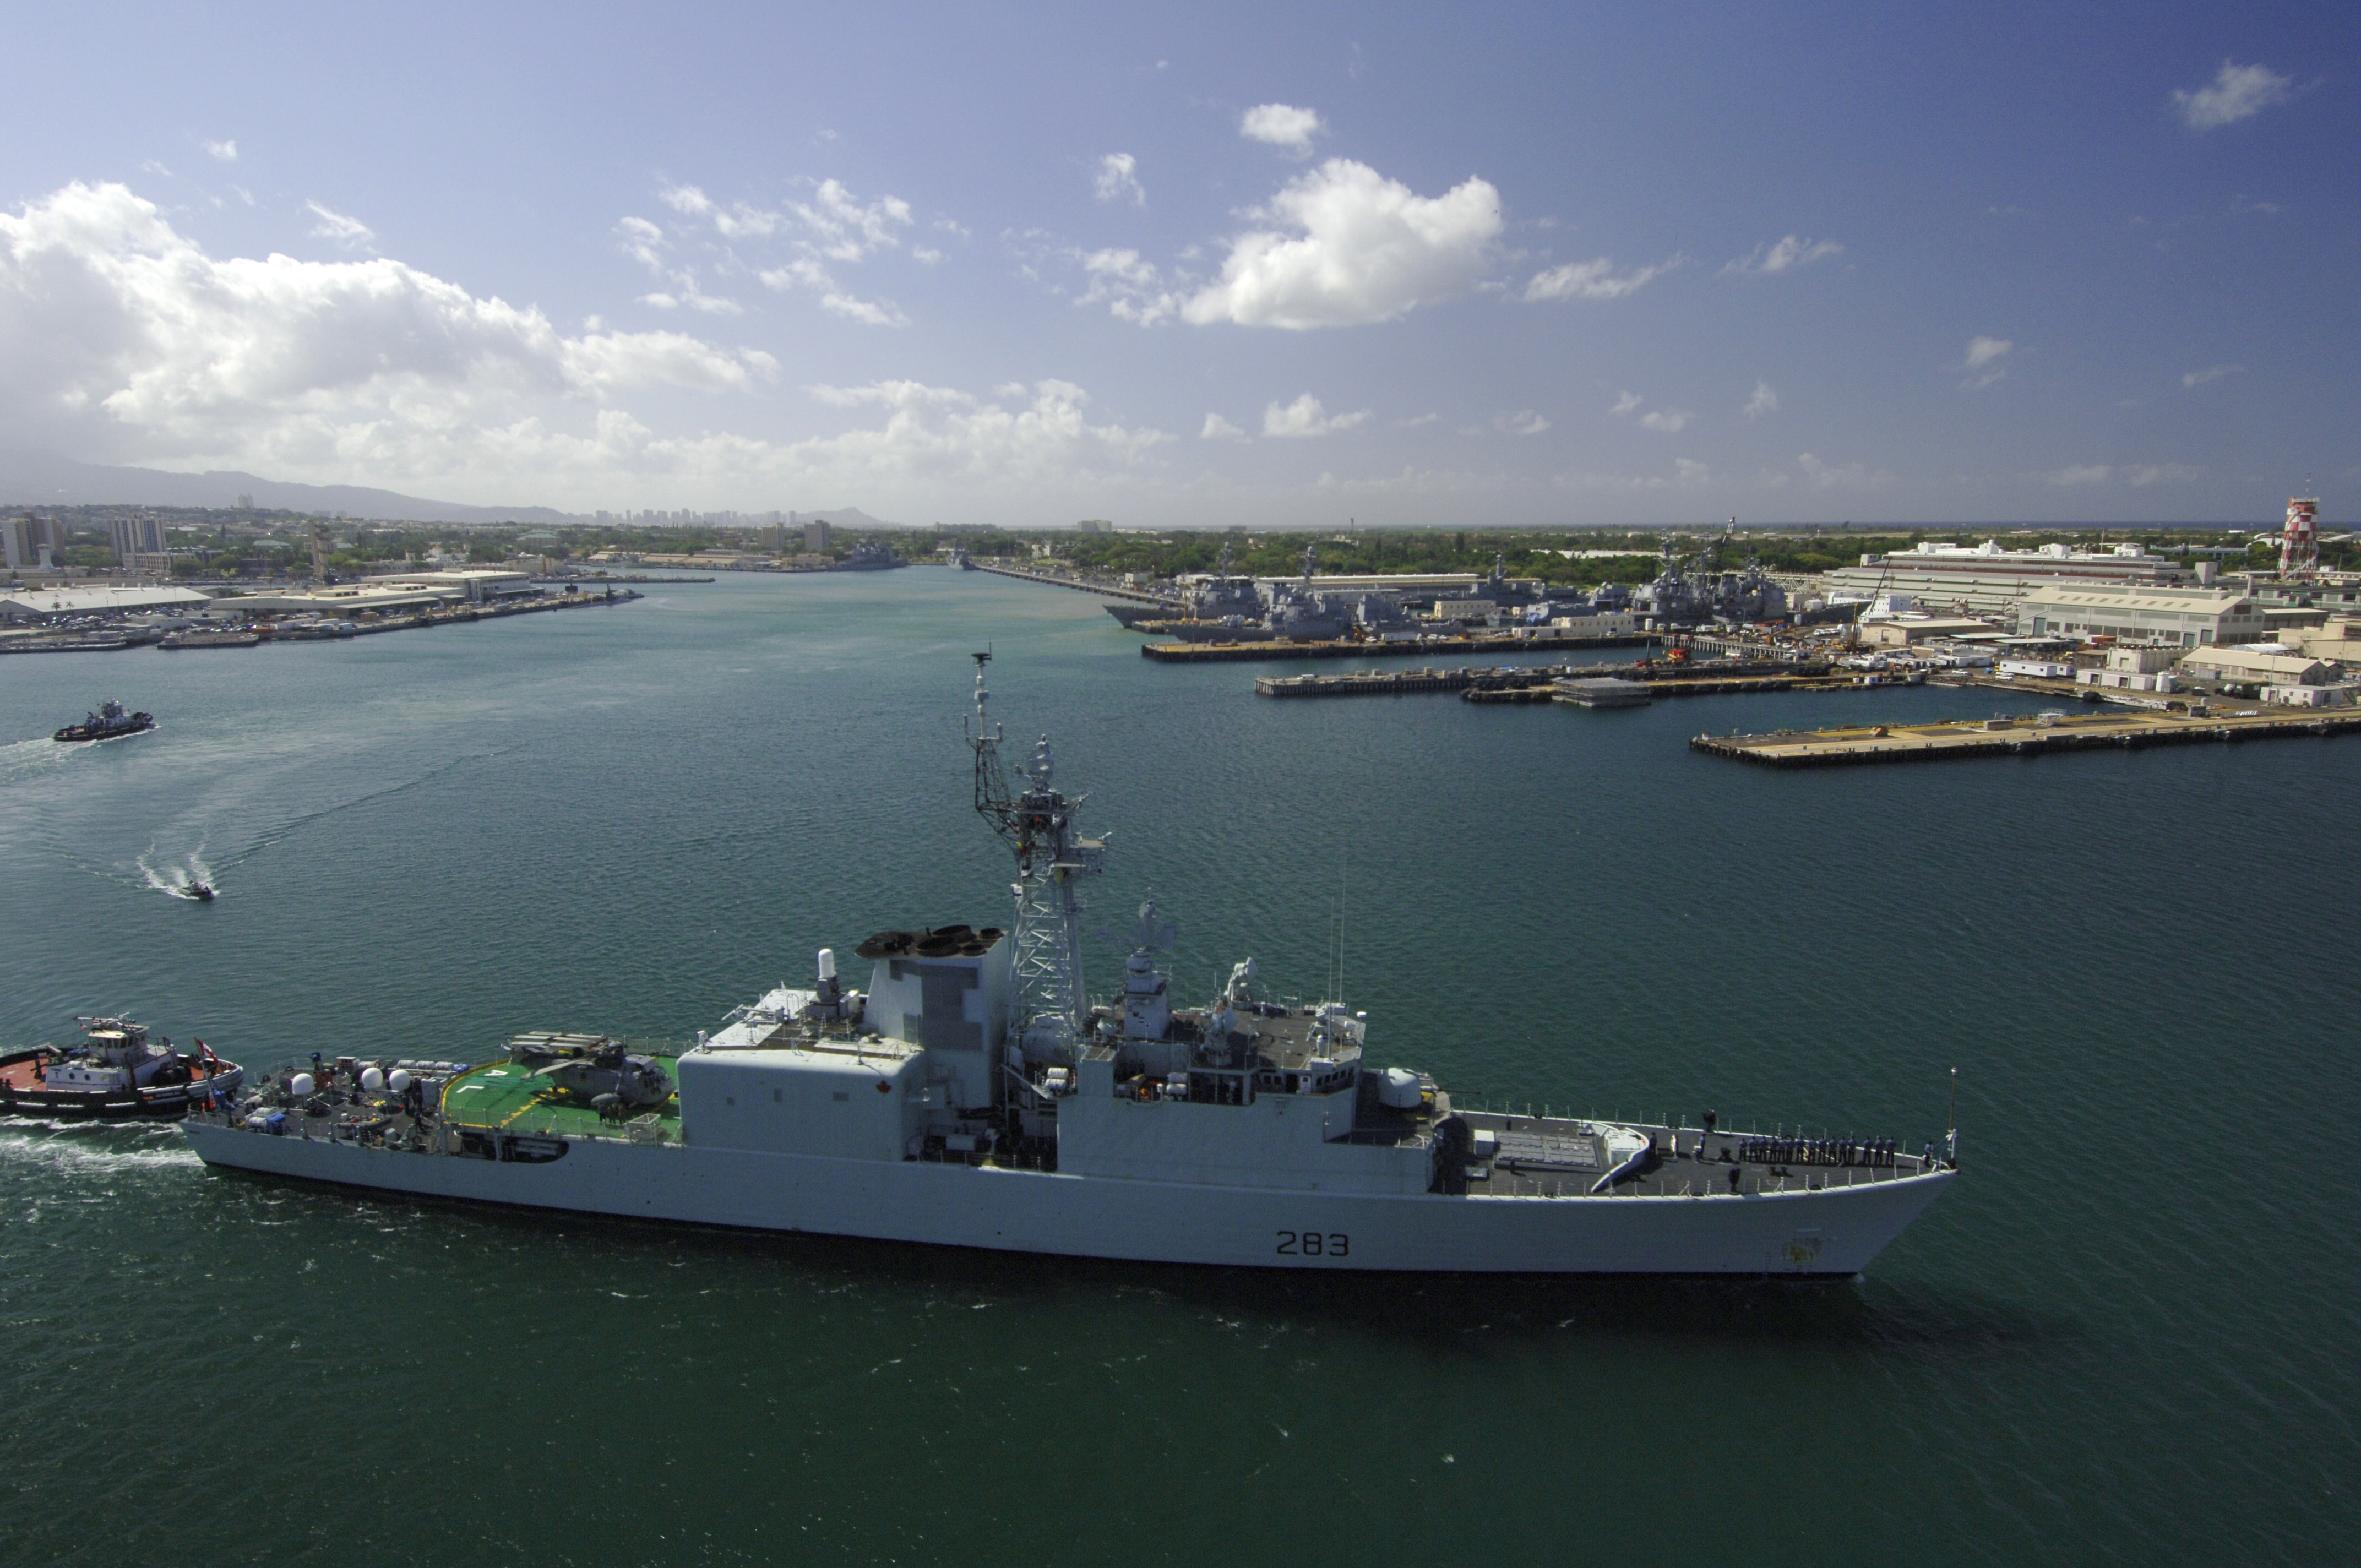 Diapositive - HMCS Algonquin departs from Pearl Harbor to participate in exercise Rim of the Pacific (RIMPAC) 2006.